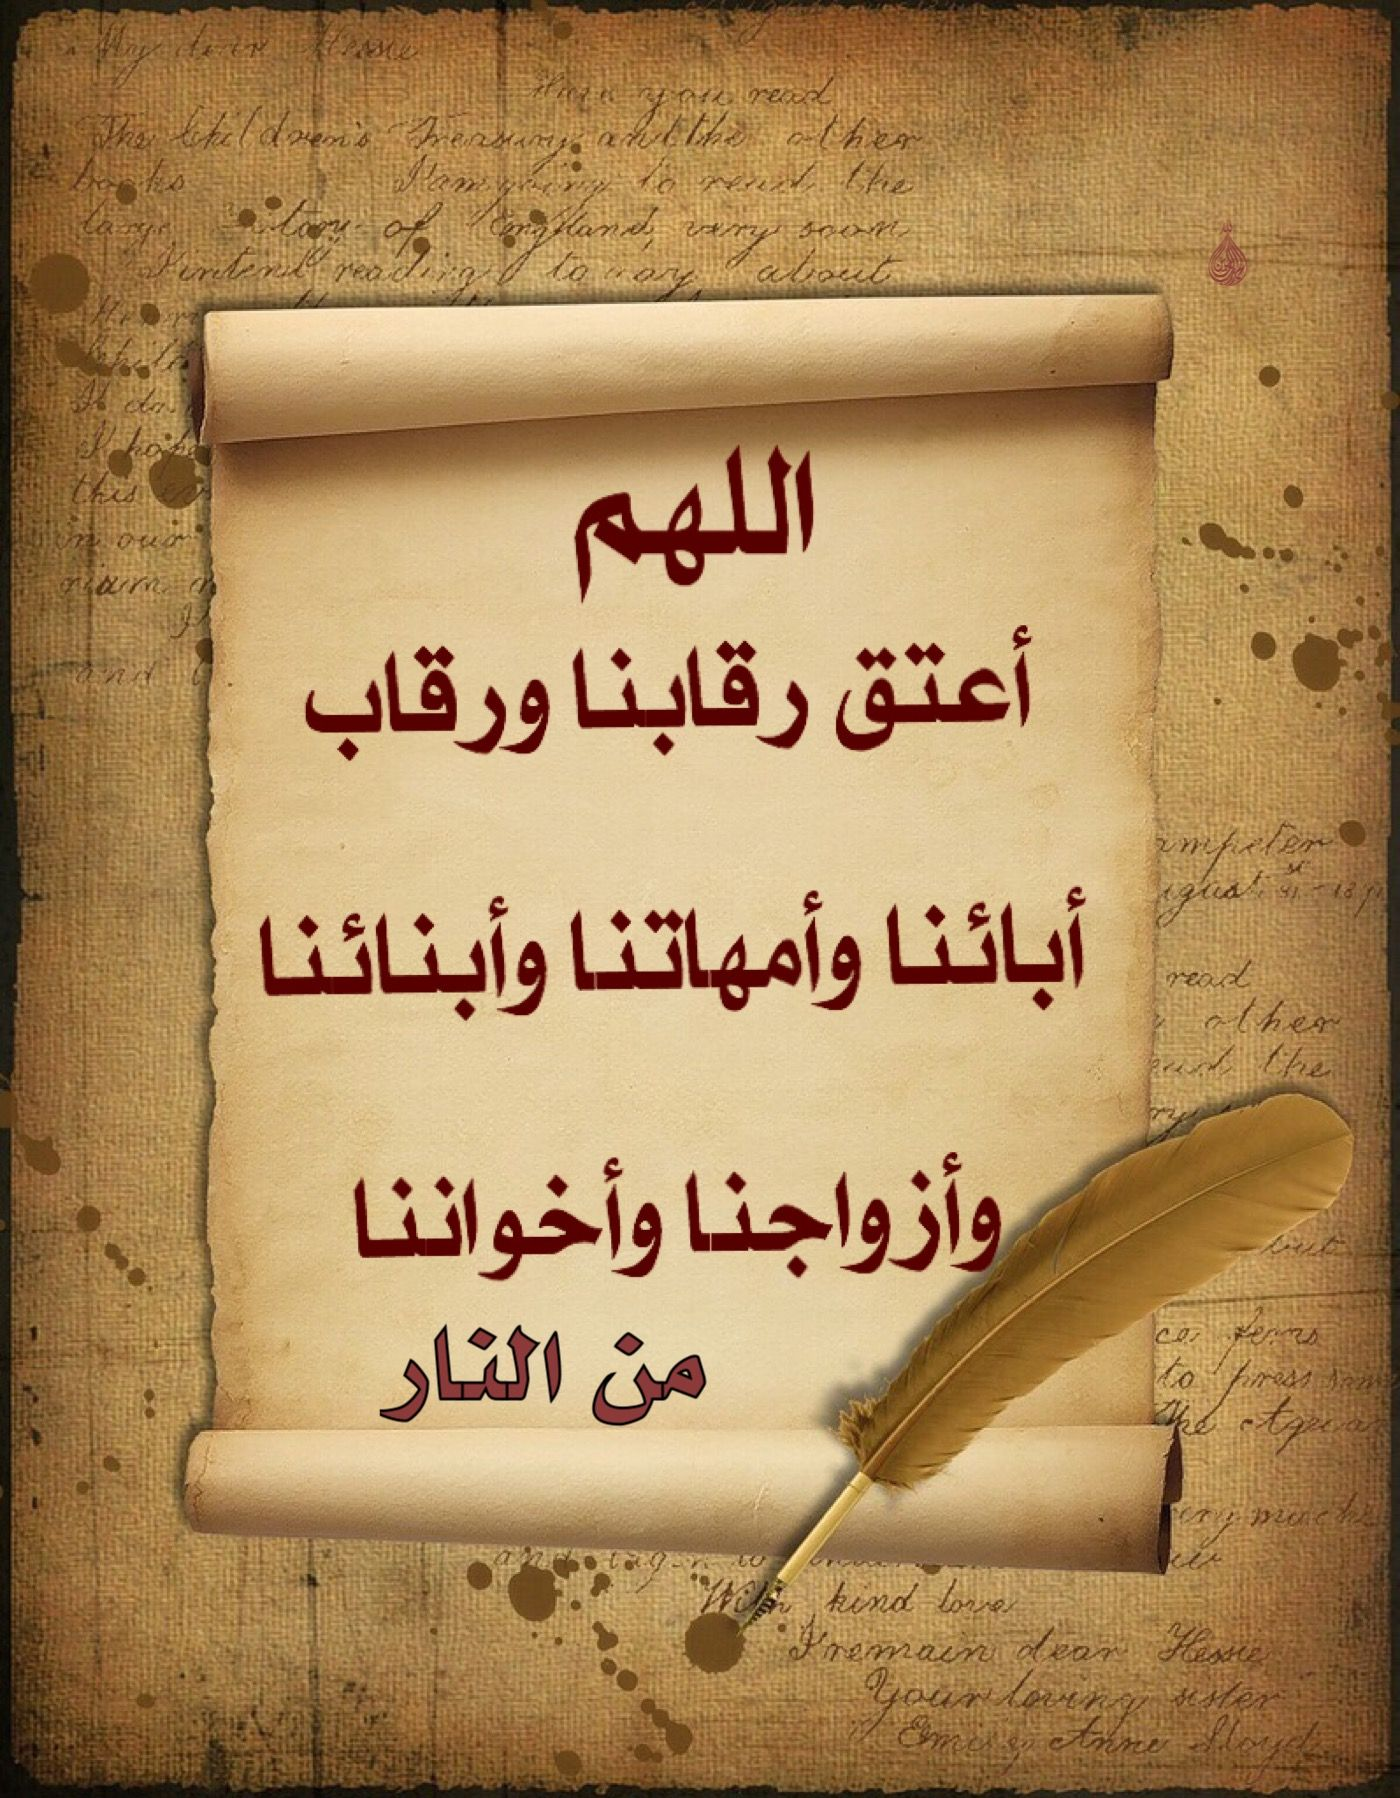 Pin By Amal Aboul Fadl On دعاء Arabic Words Words Thoughts